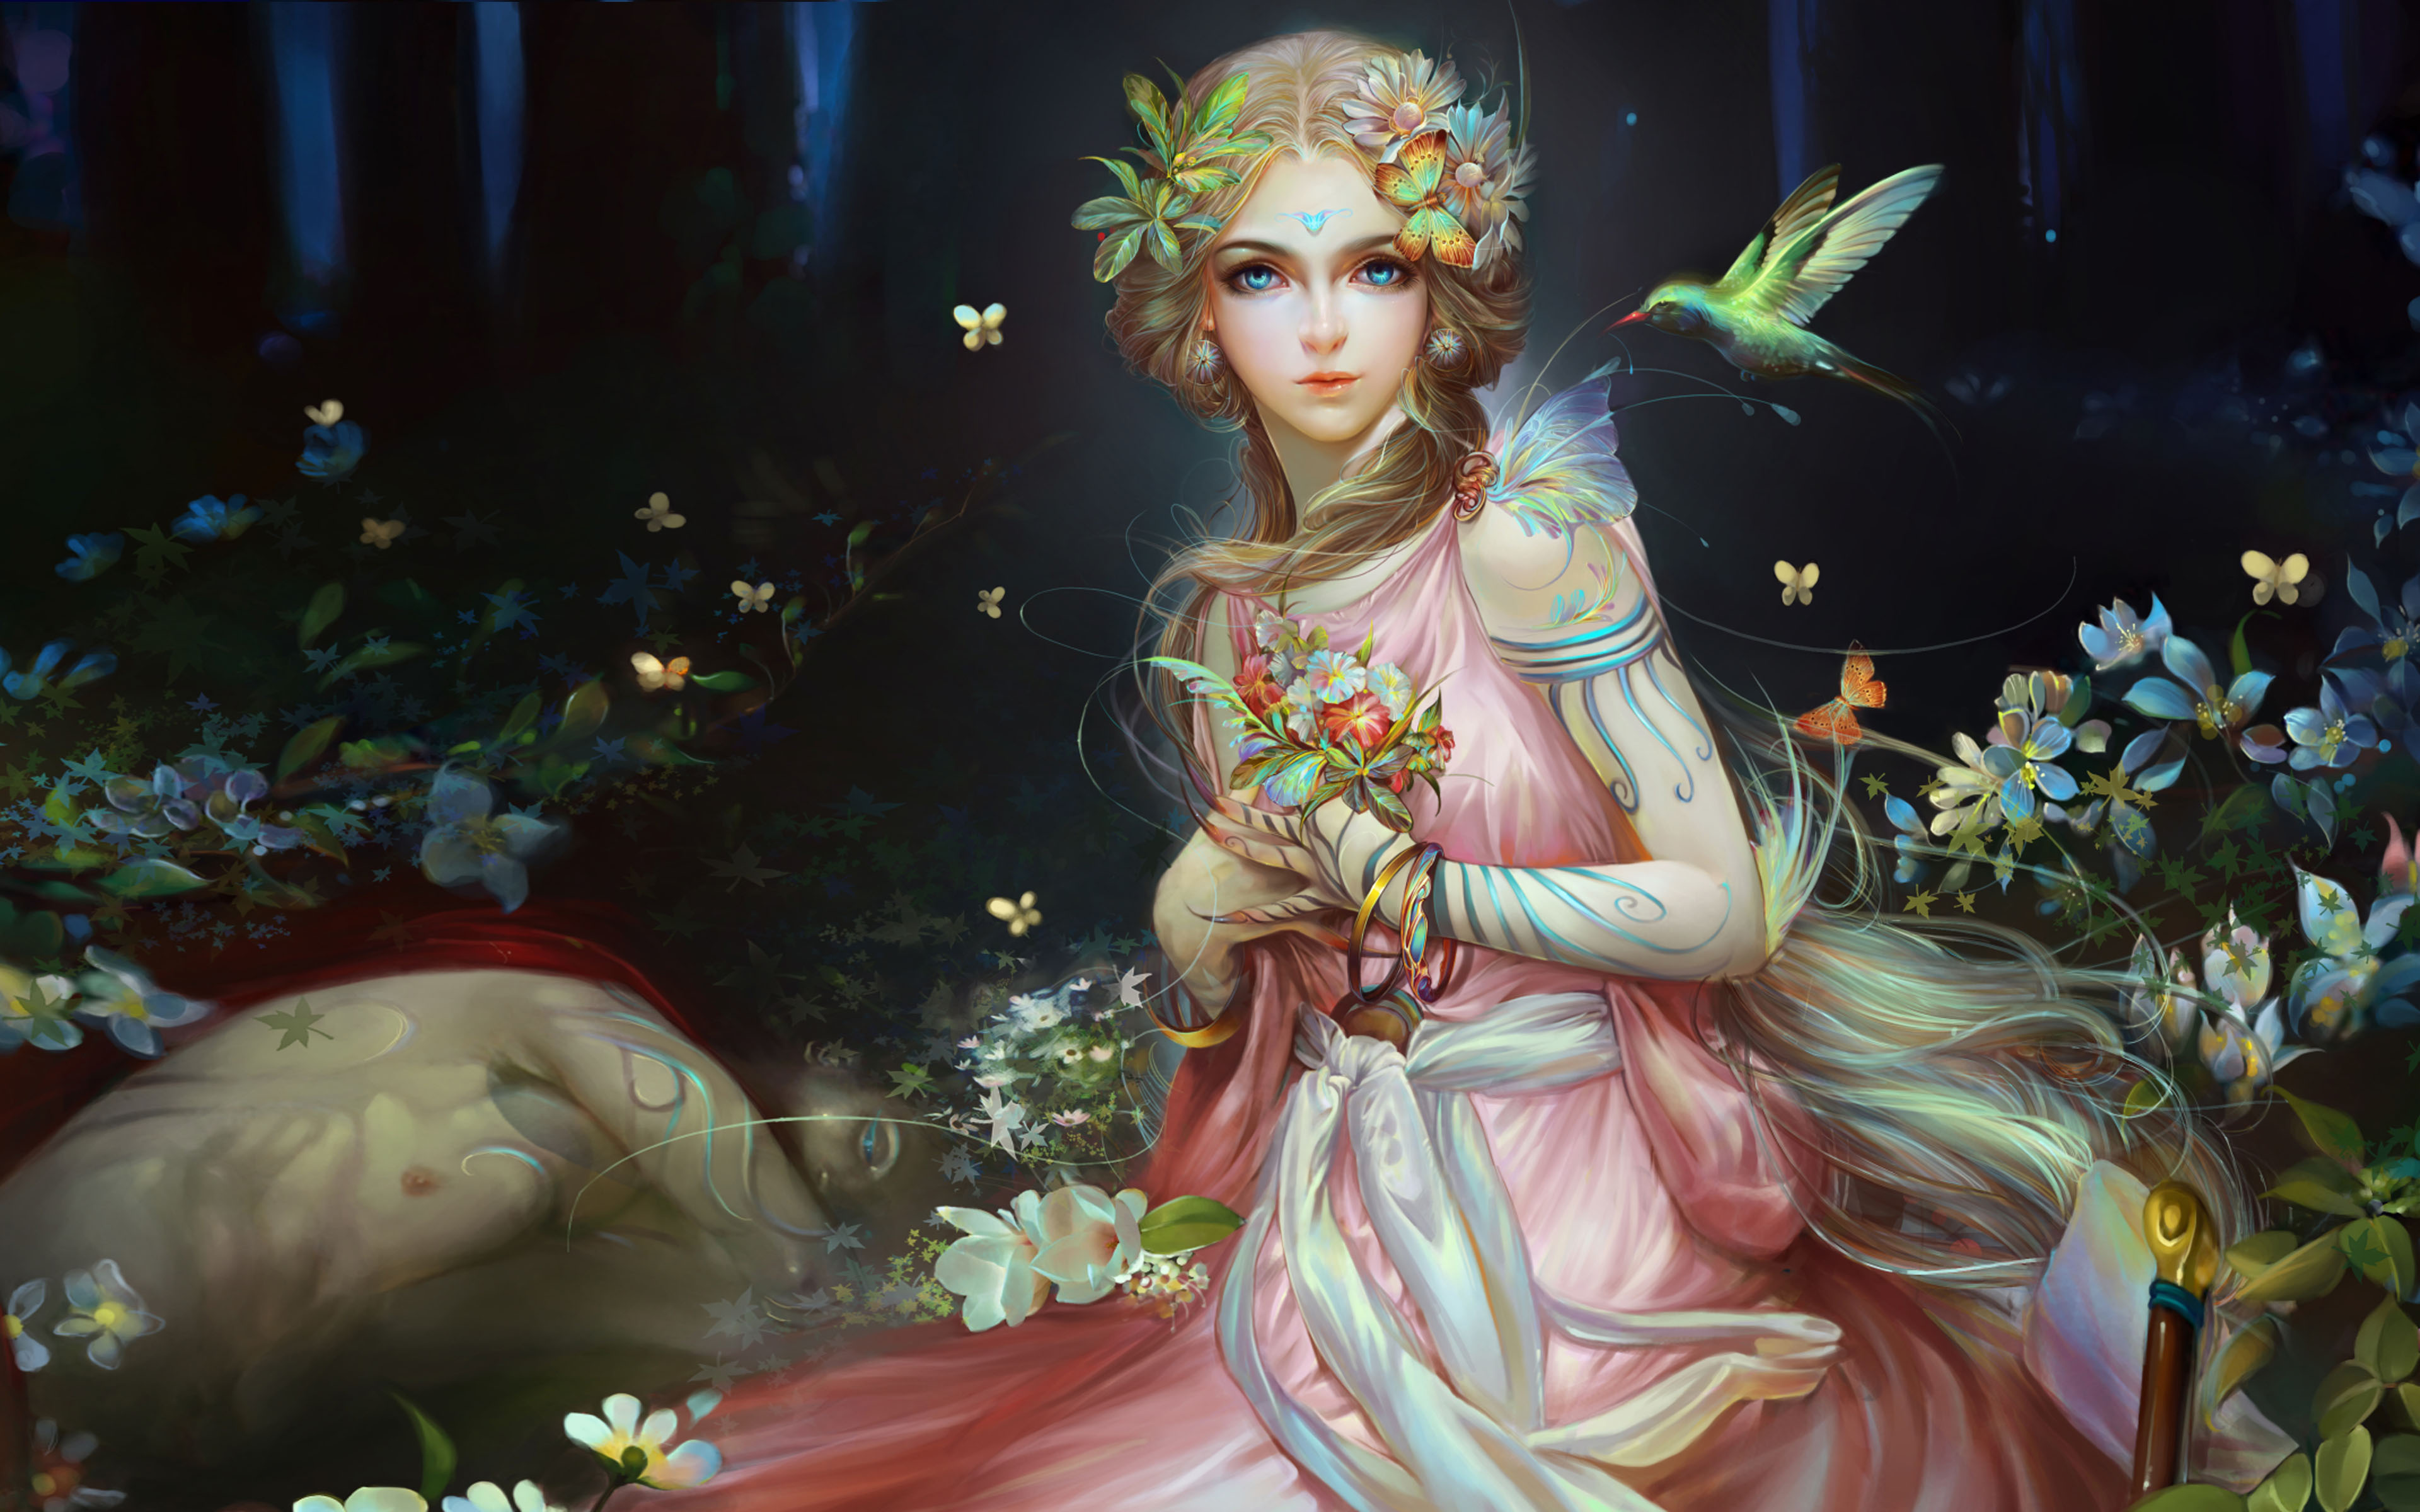 Beautiful Girl Wallpaper Hd For Pc Beautiful Fairy Fantasy Girl Mythical Creature In The